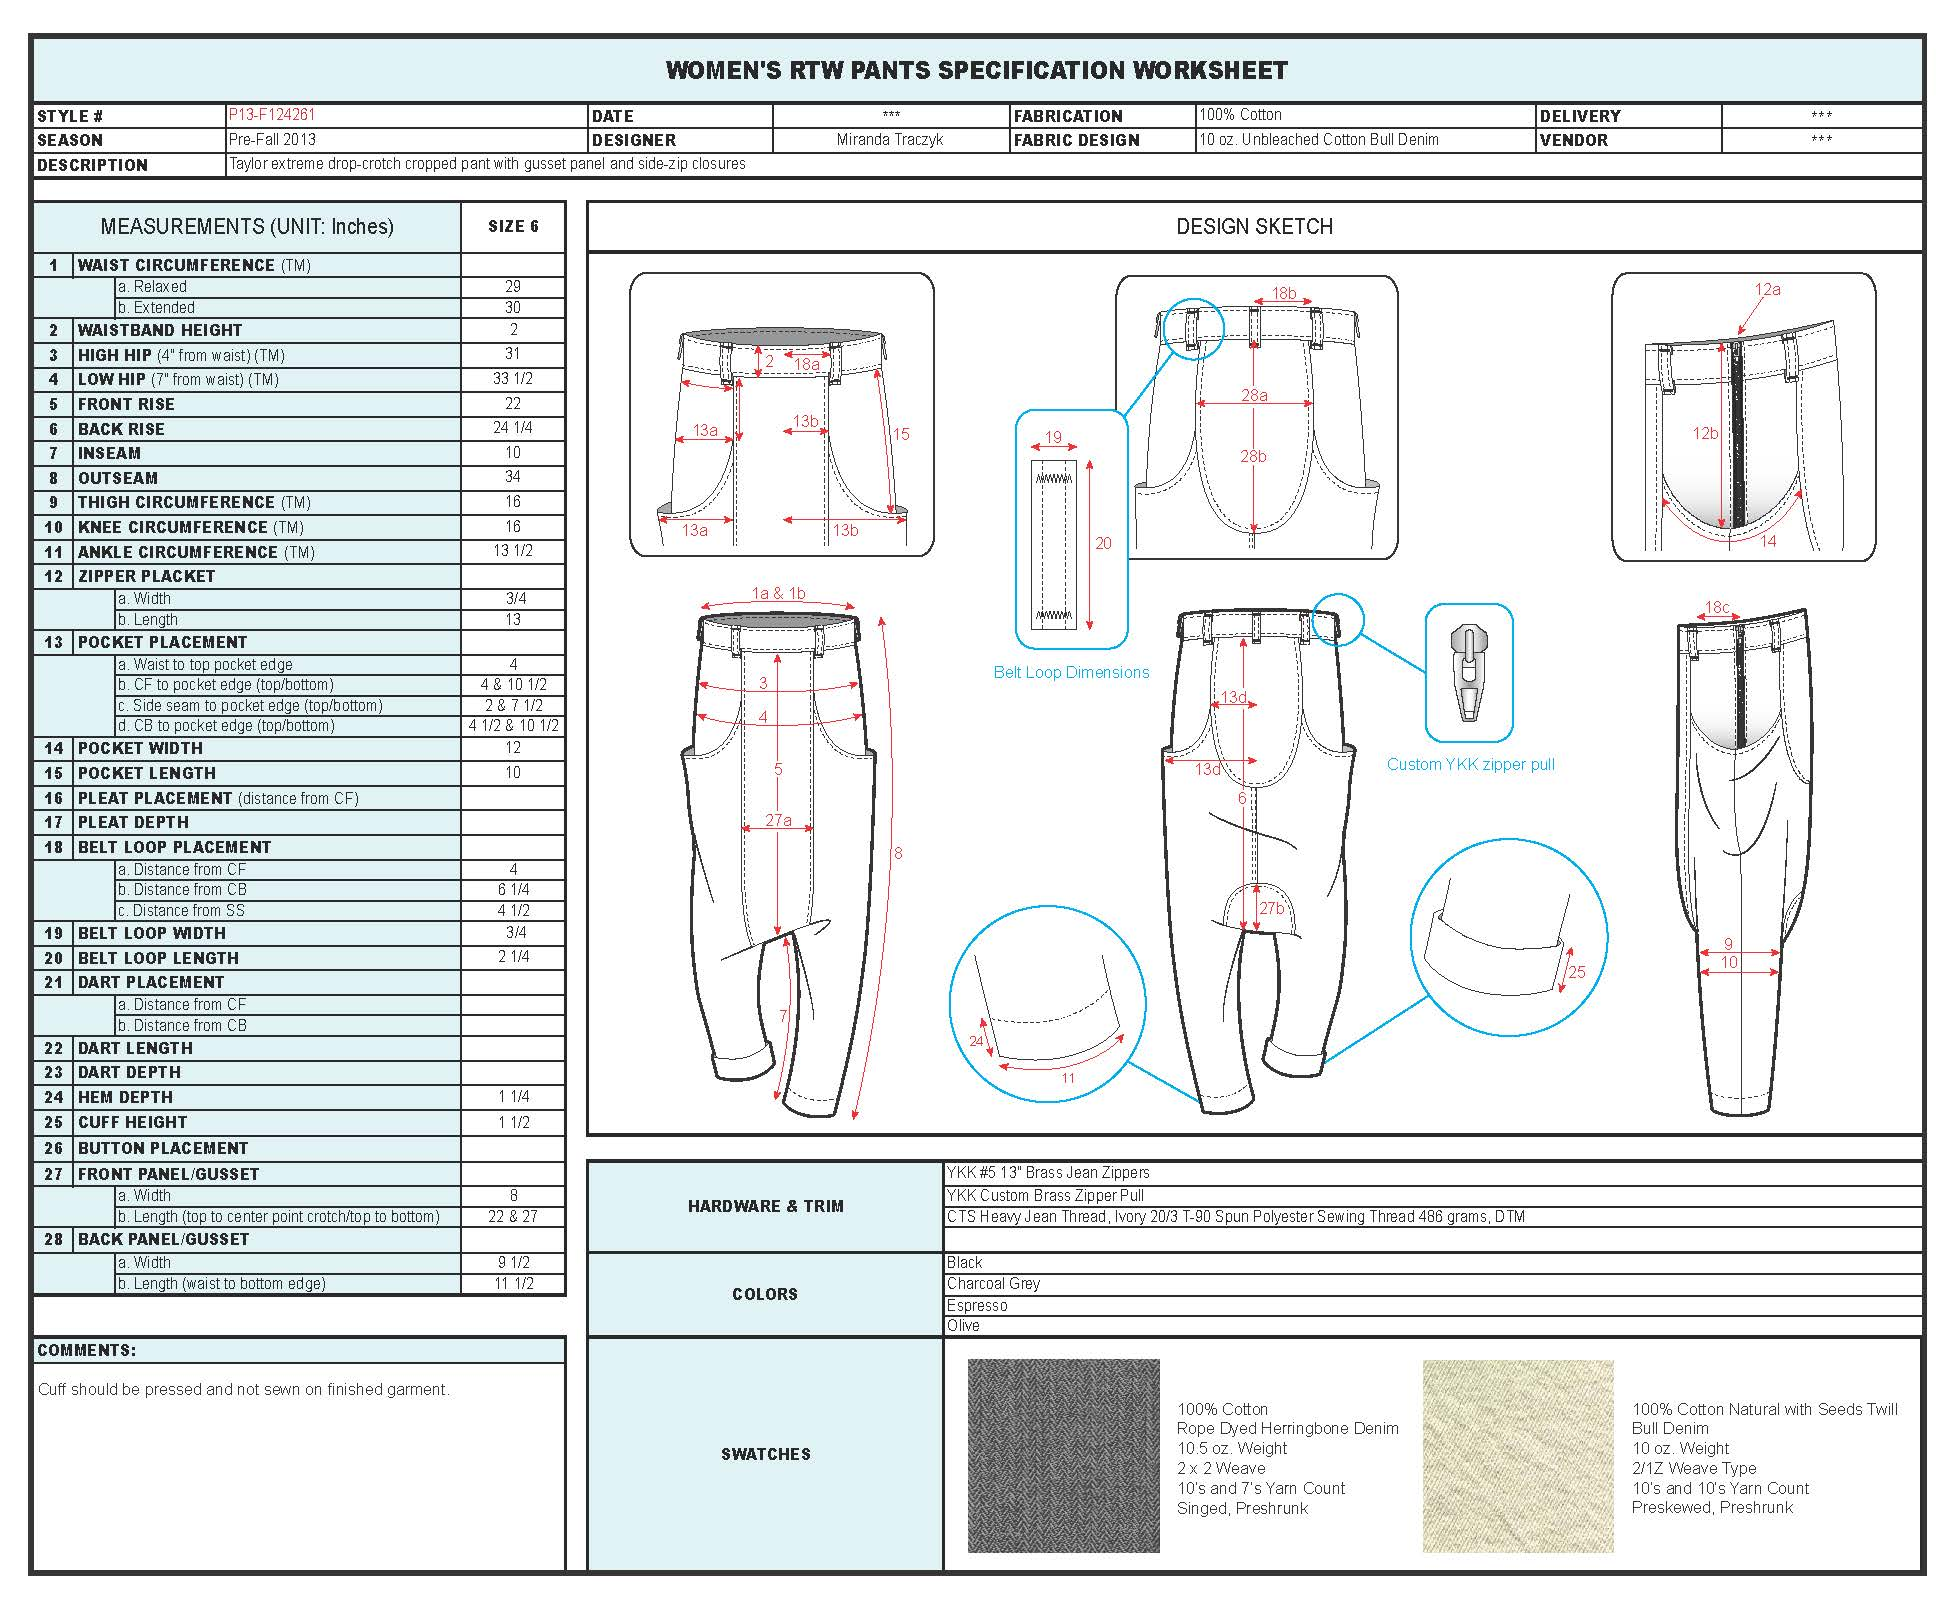 Fashion Cad 39 S Technical Design By Miranda Traczyk At